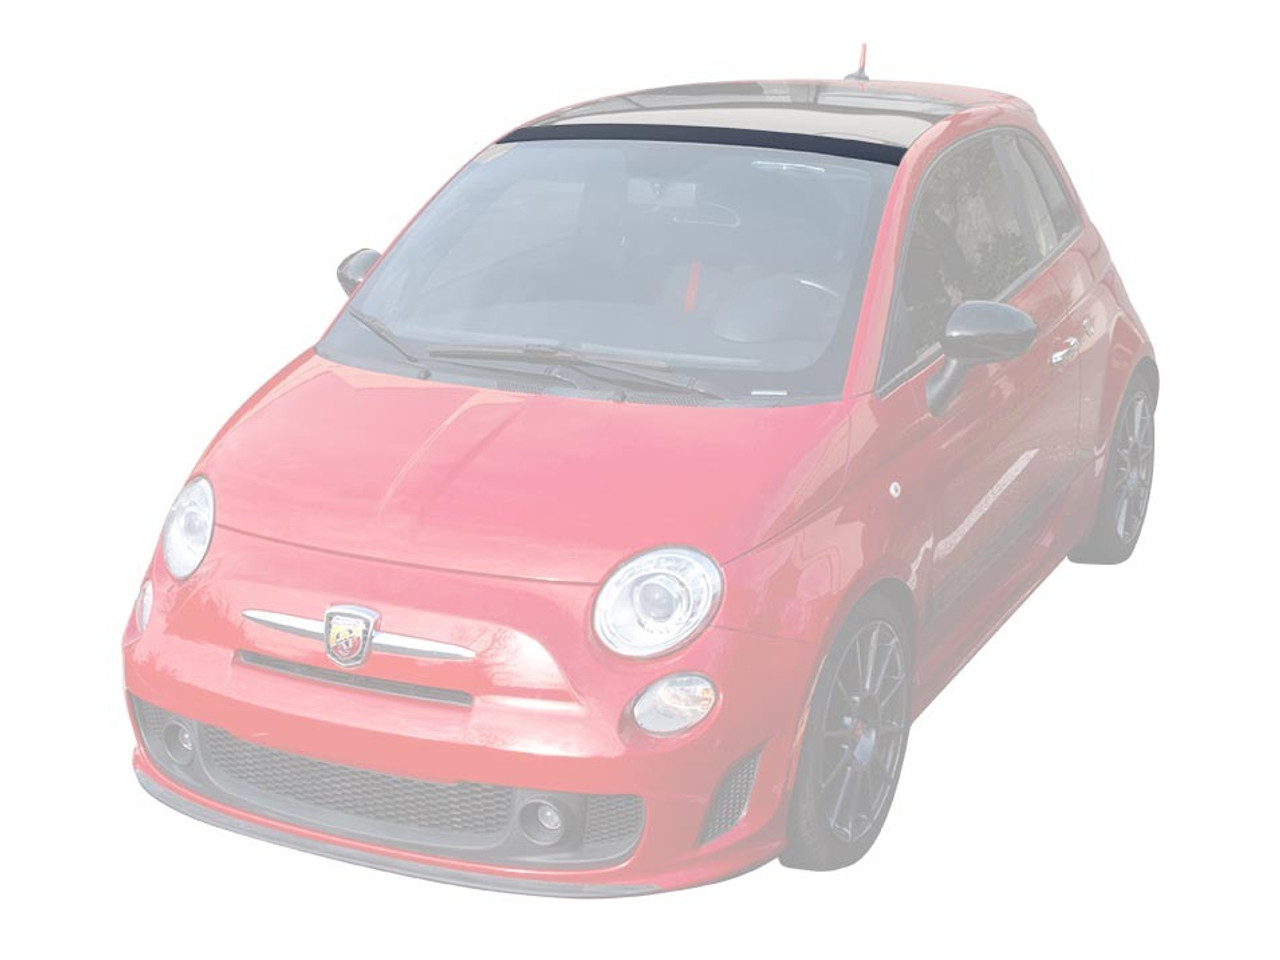 FIAT 500 Roof Trim Protector Fits 2012-on FIAT 500 - All FIAT 500 2 door models with Sunroof - Auto Ricambi